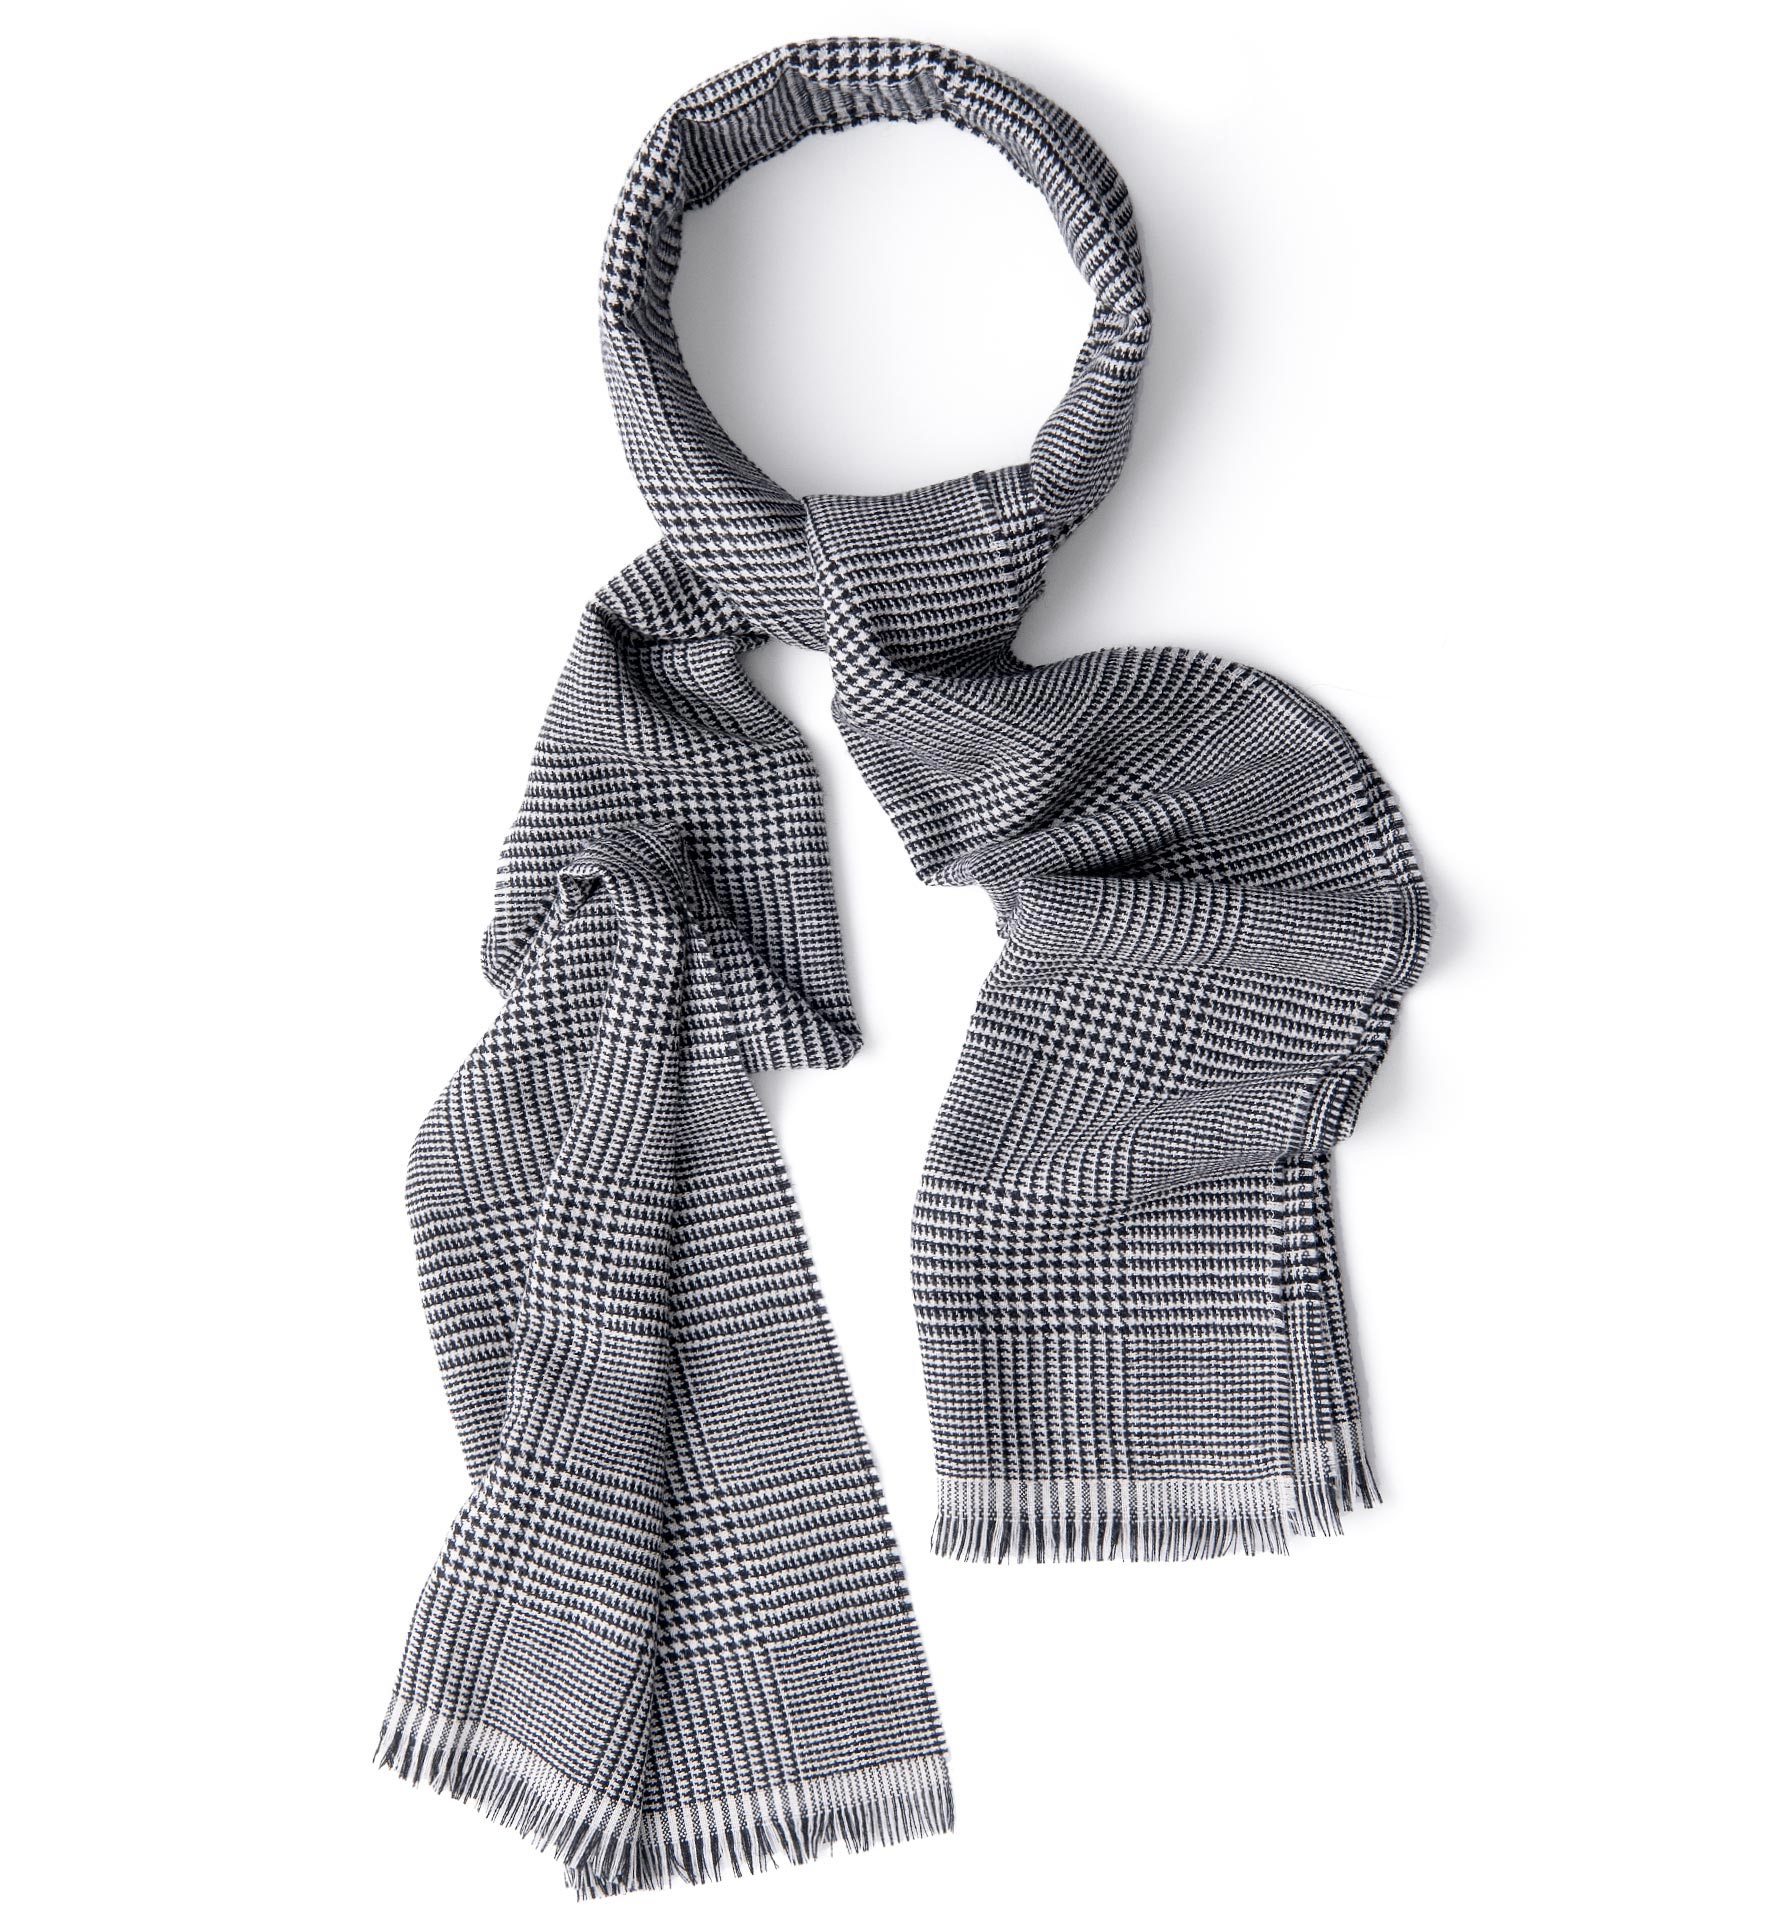 Zoom Image of Black and White Glen Plaid Wool Scarf